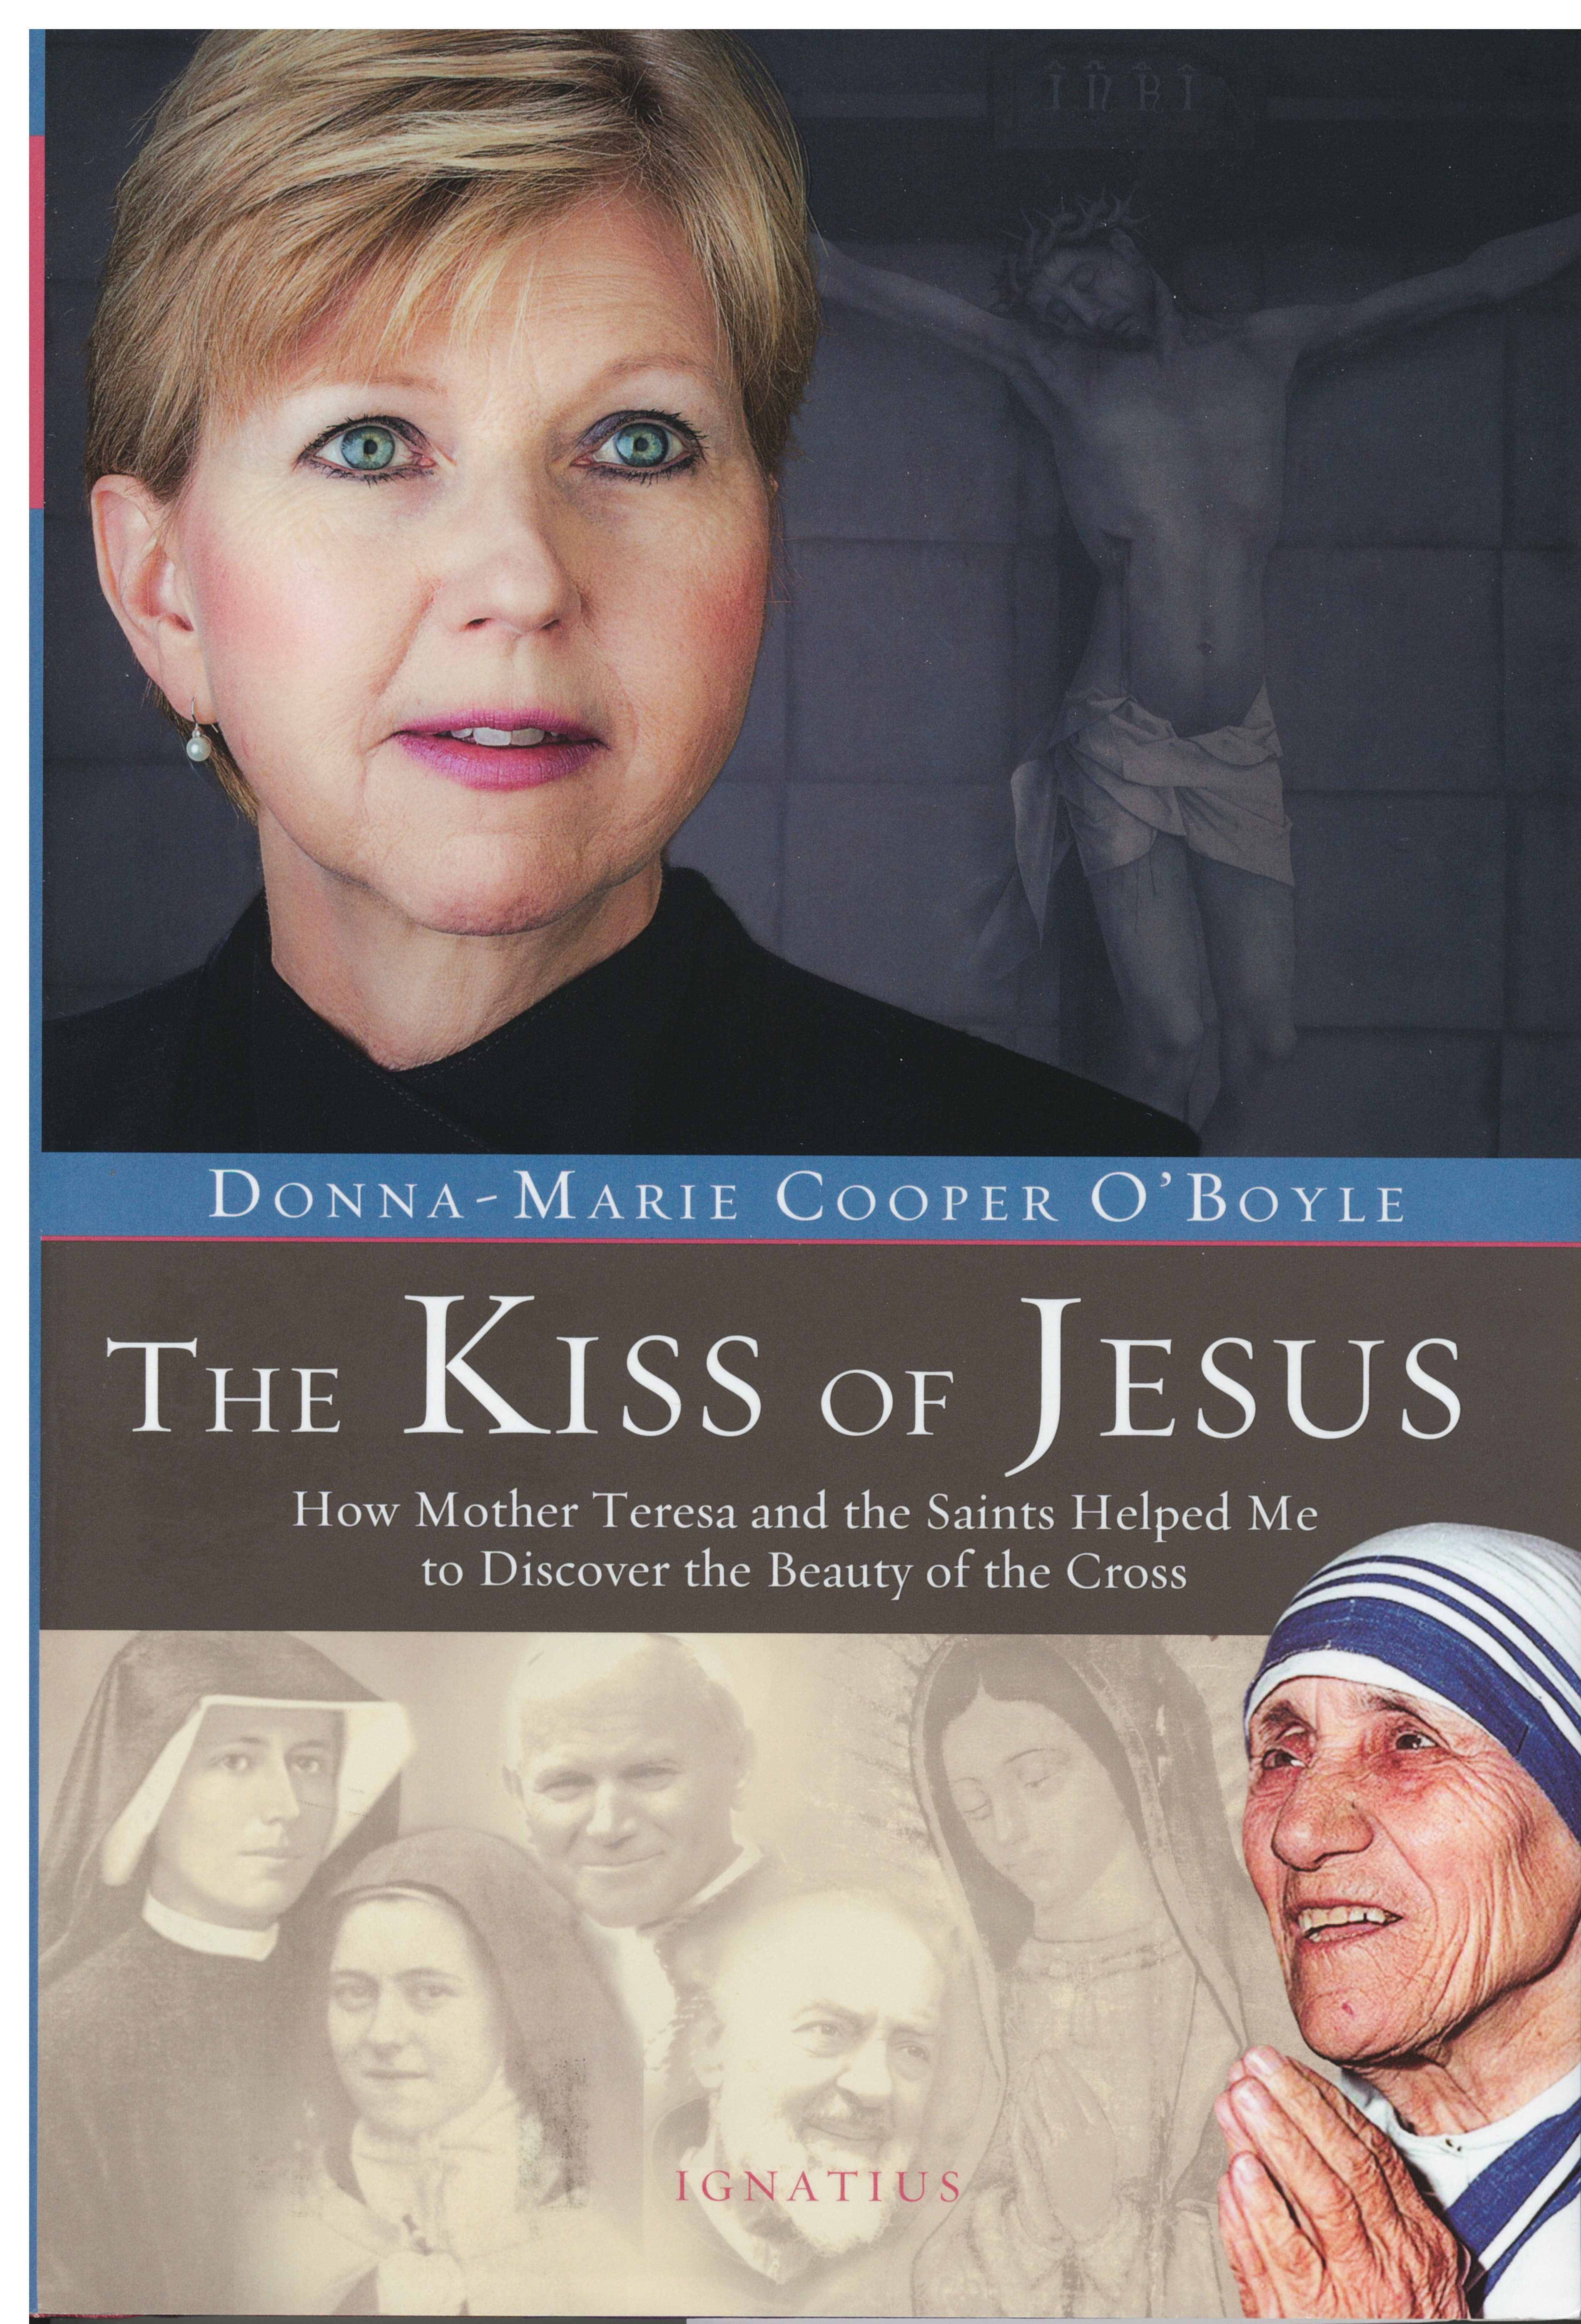 The Kiss of Jesus by Donna-Marie Cooper O'Boyle 108-9781586179168